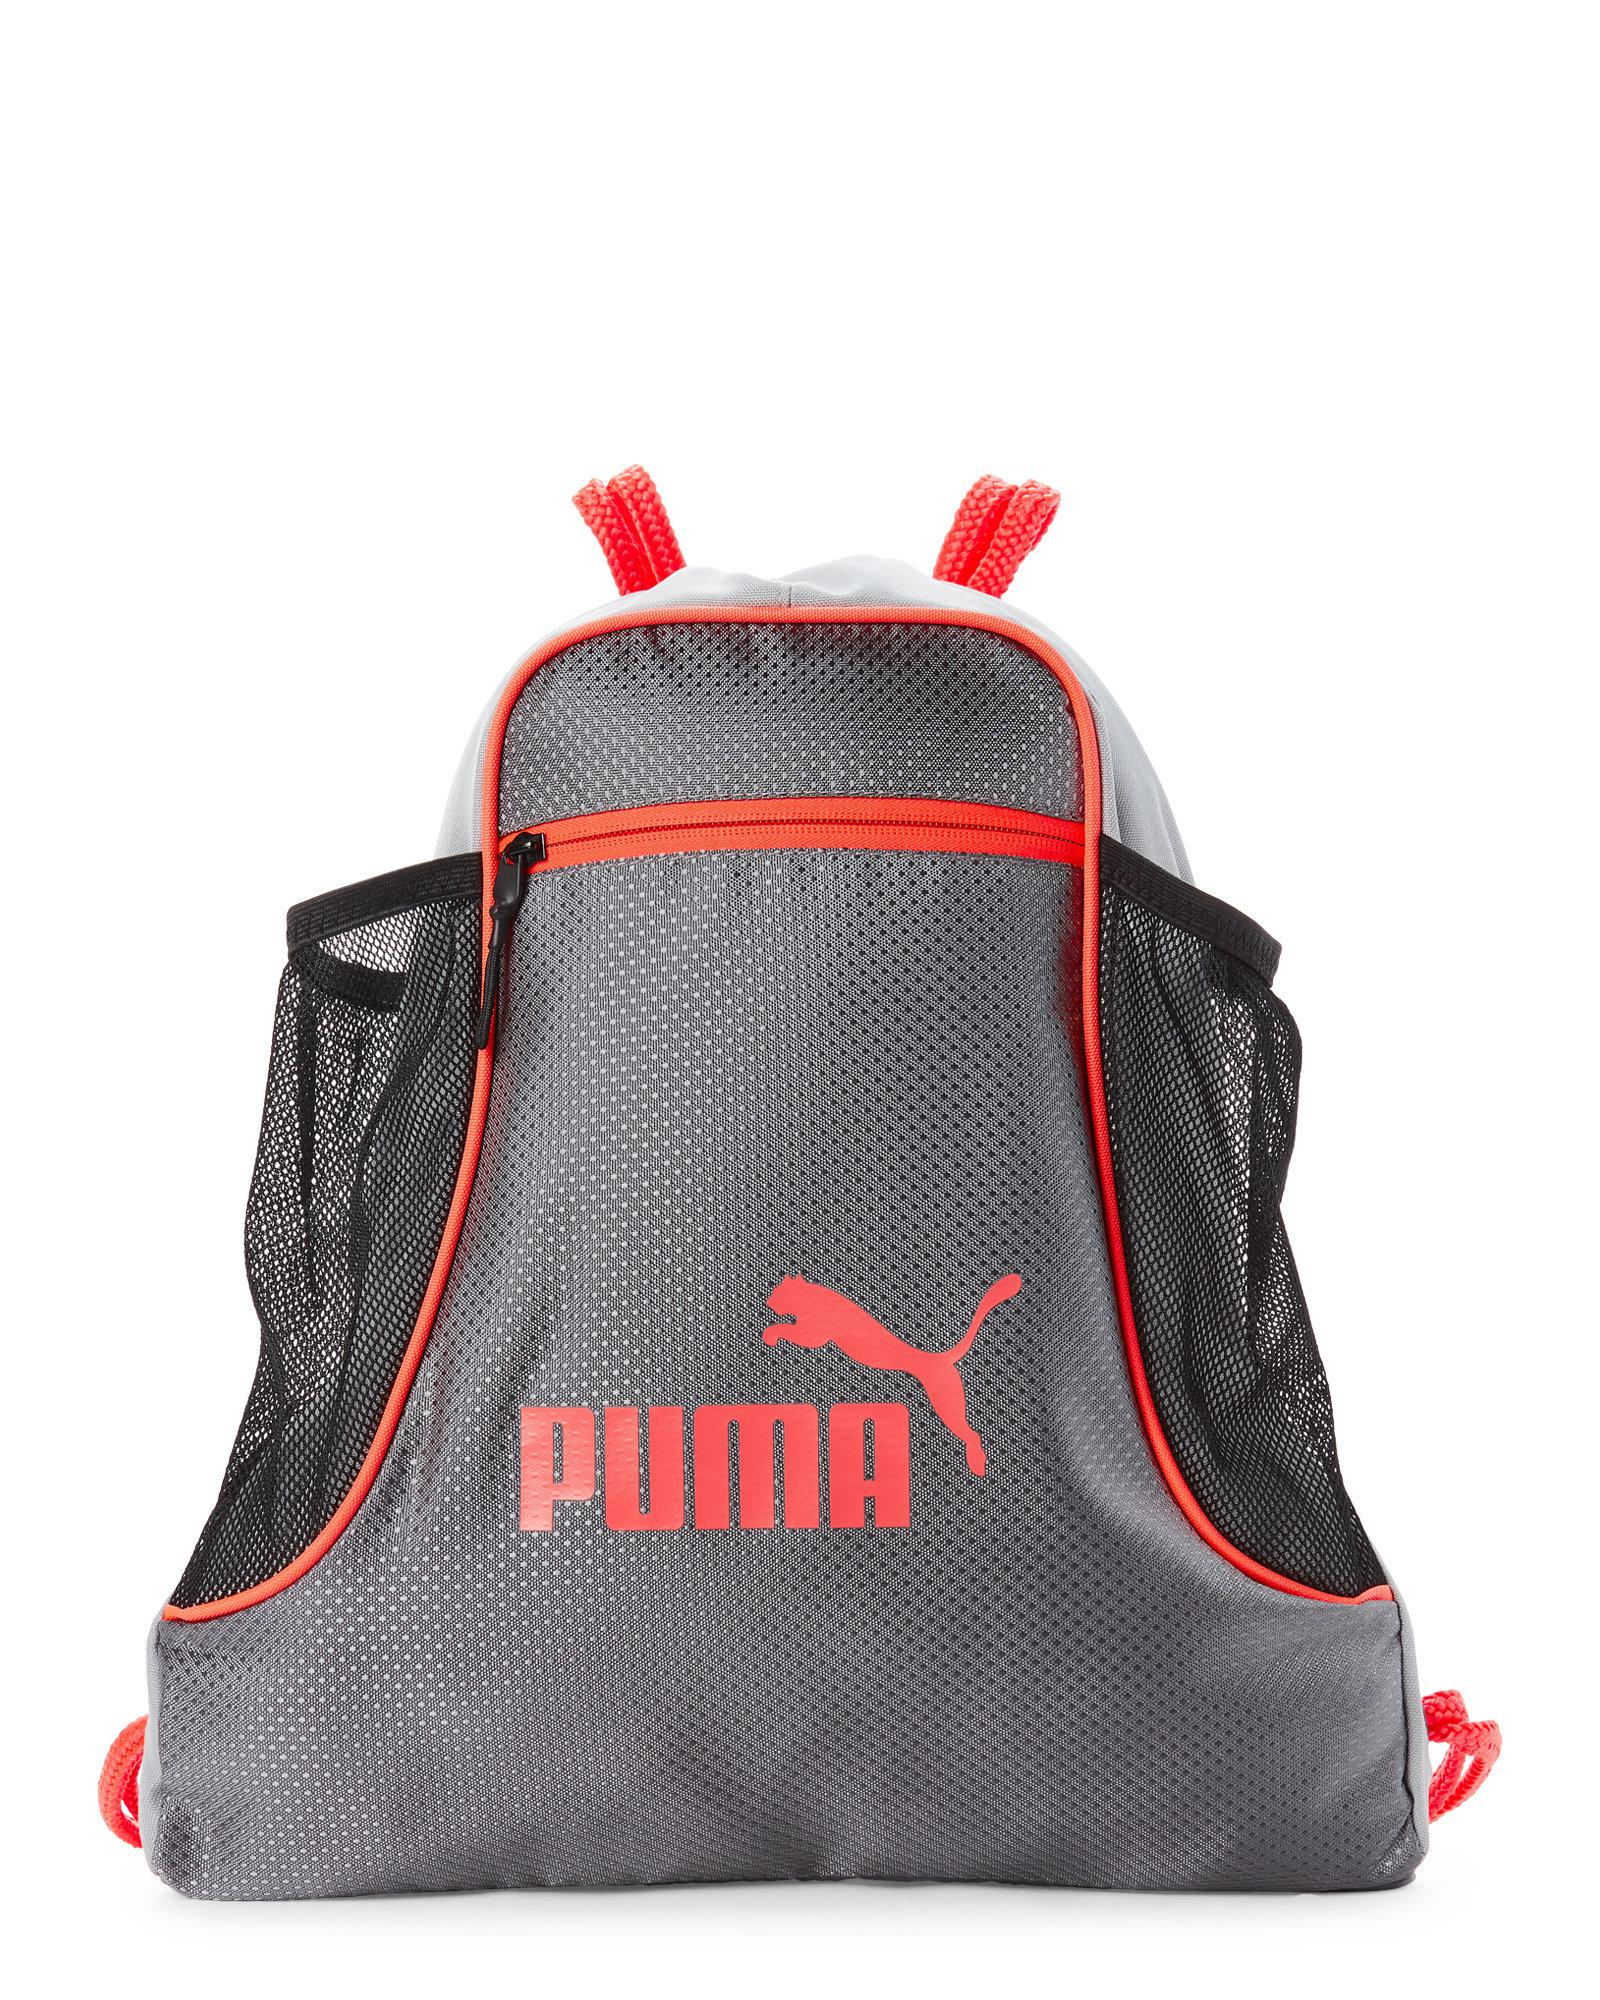 4d42a1ee240 PUMA Grey Equinox Drawstring Backpack in Gray for Men - Lyst